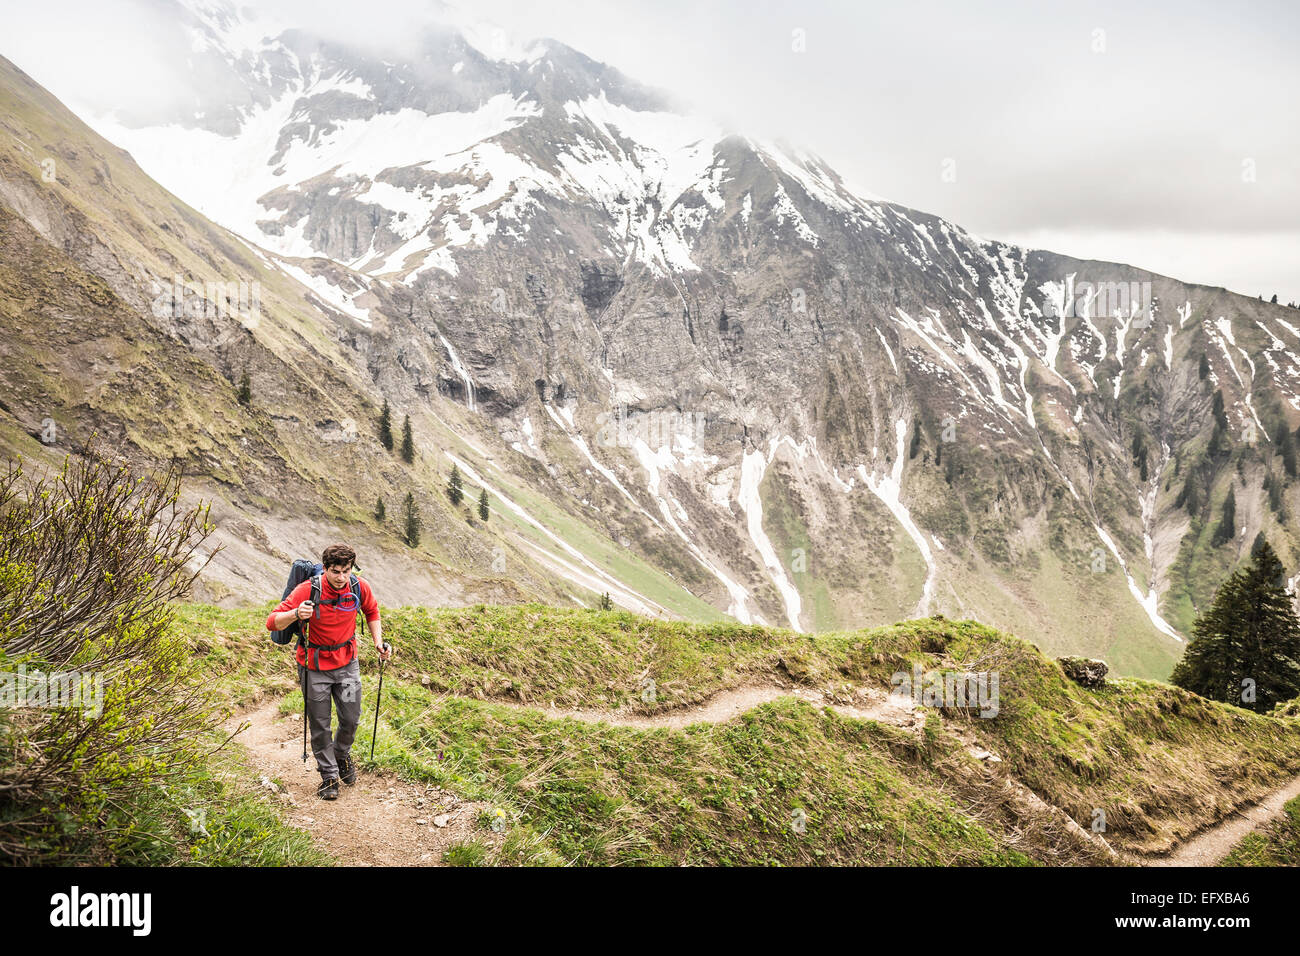 Young man mountain trekking, Oberstdorf, Bavaria, Germany - Stock Image